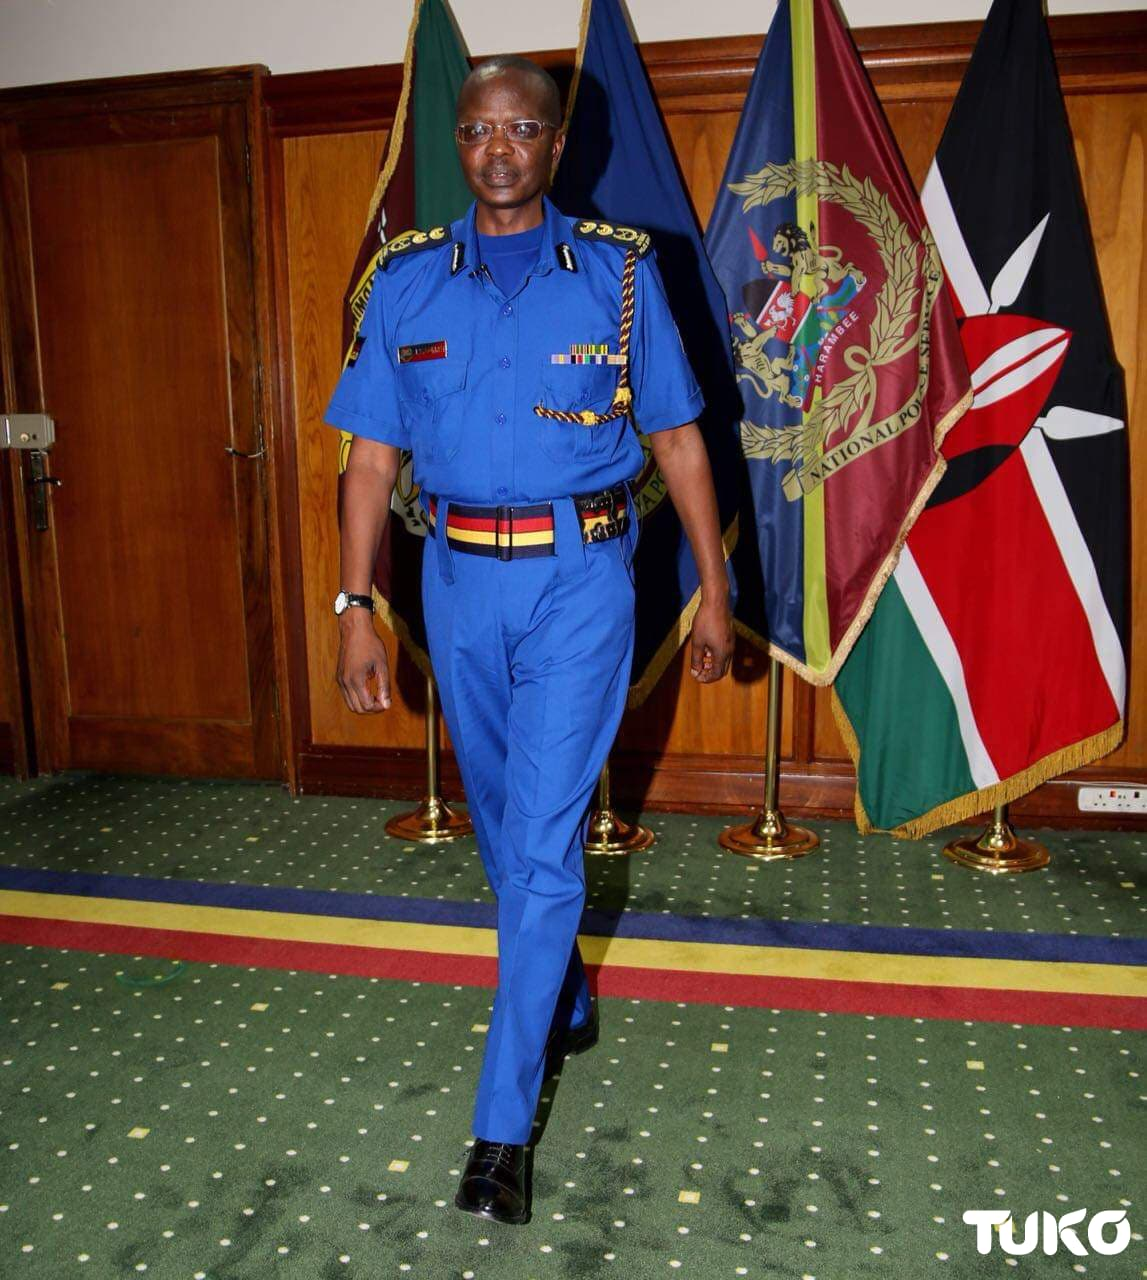 The Inspector General of Police Joseph Boinnet donning the new police uniform.